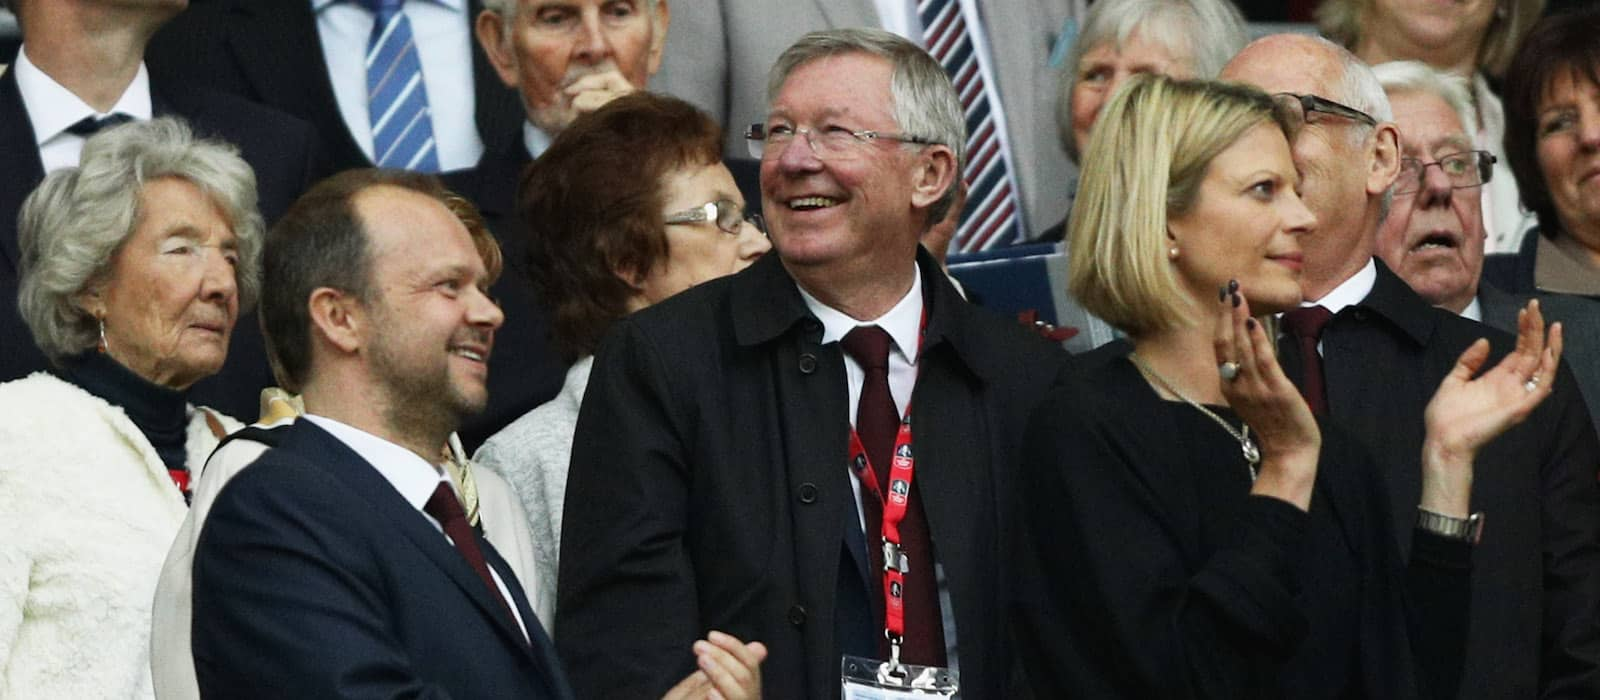 Manchester United fans react to Sir Alex Ferguson's return to Old Trafford